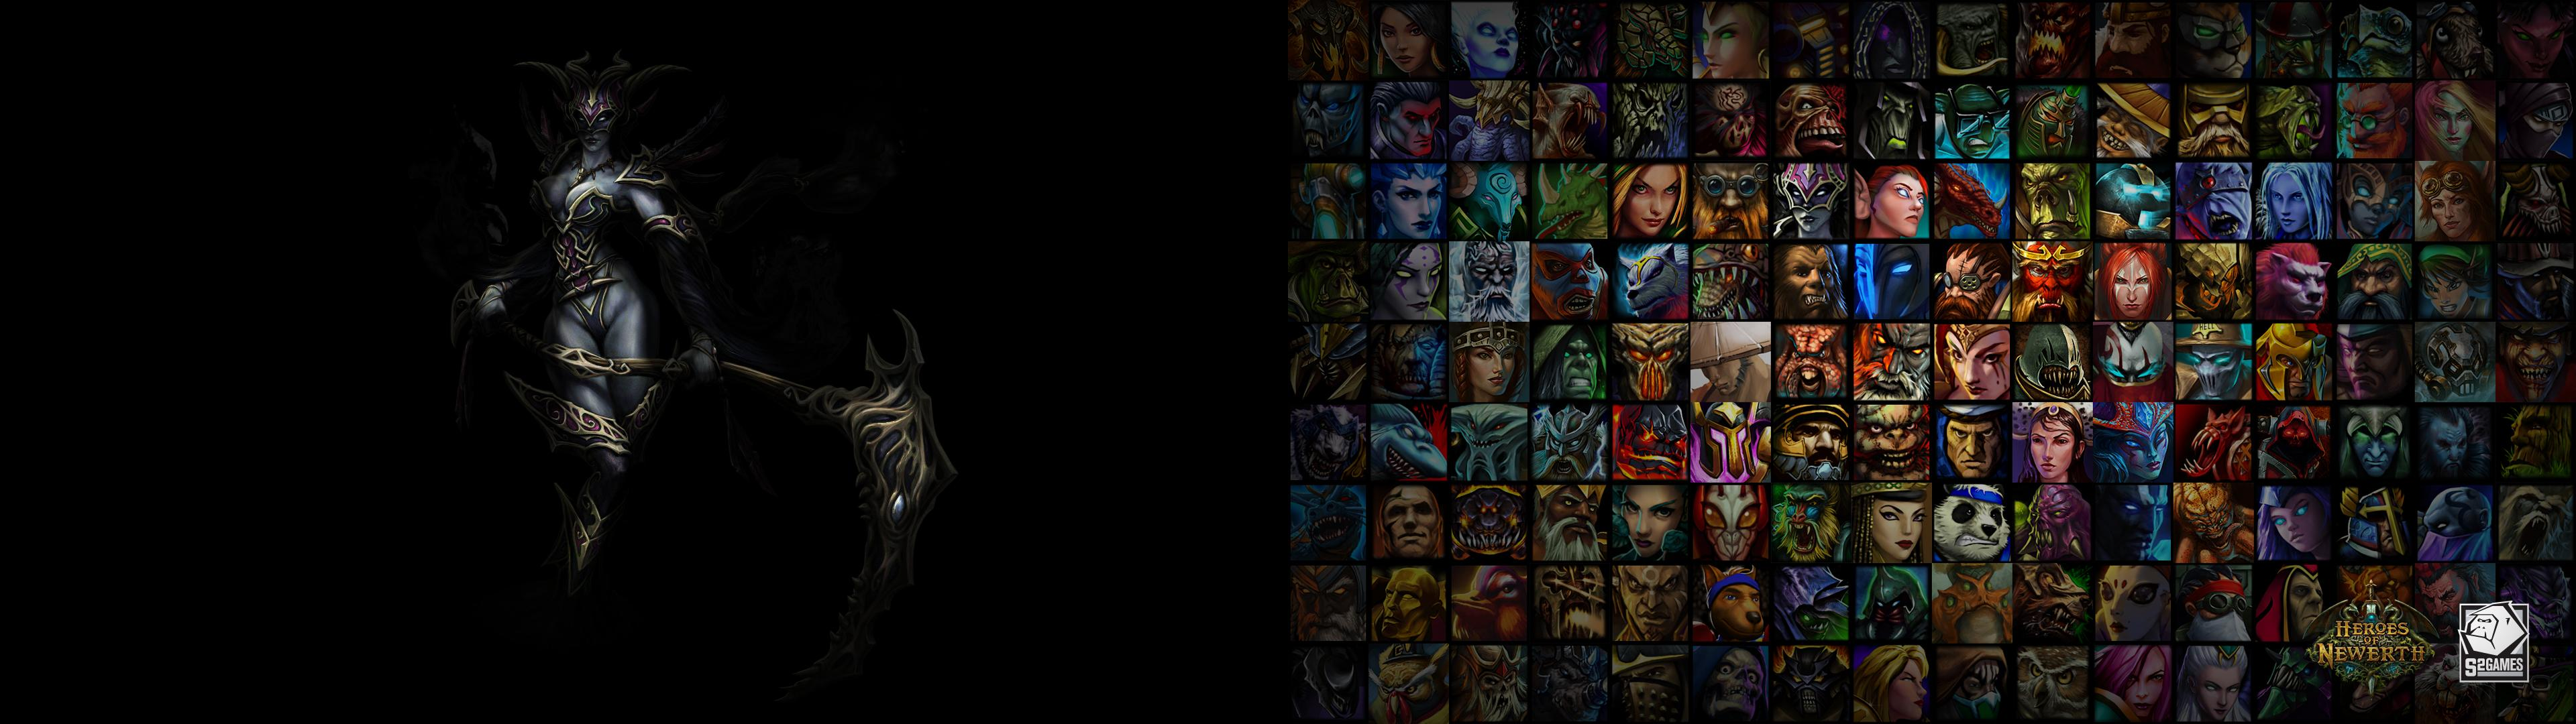 Dual Monitors 3840x1080 Heroes of Newerth wallpaper iimgurcom 3840x1080